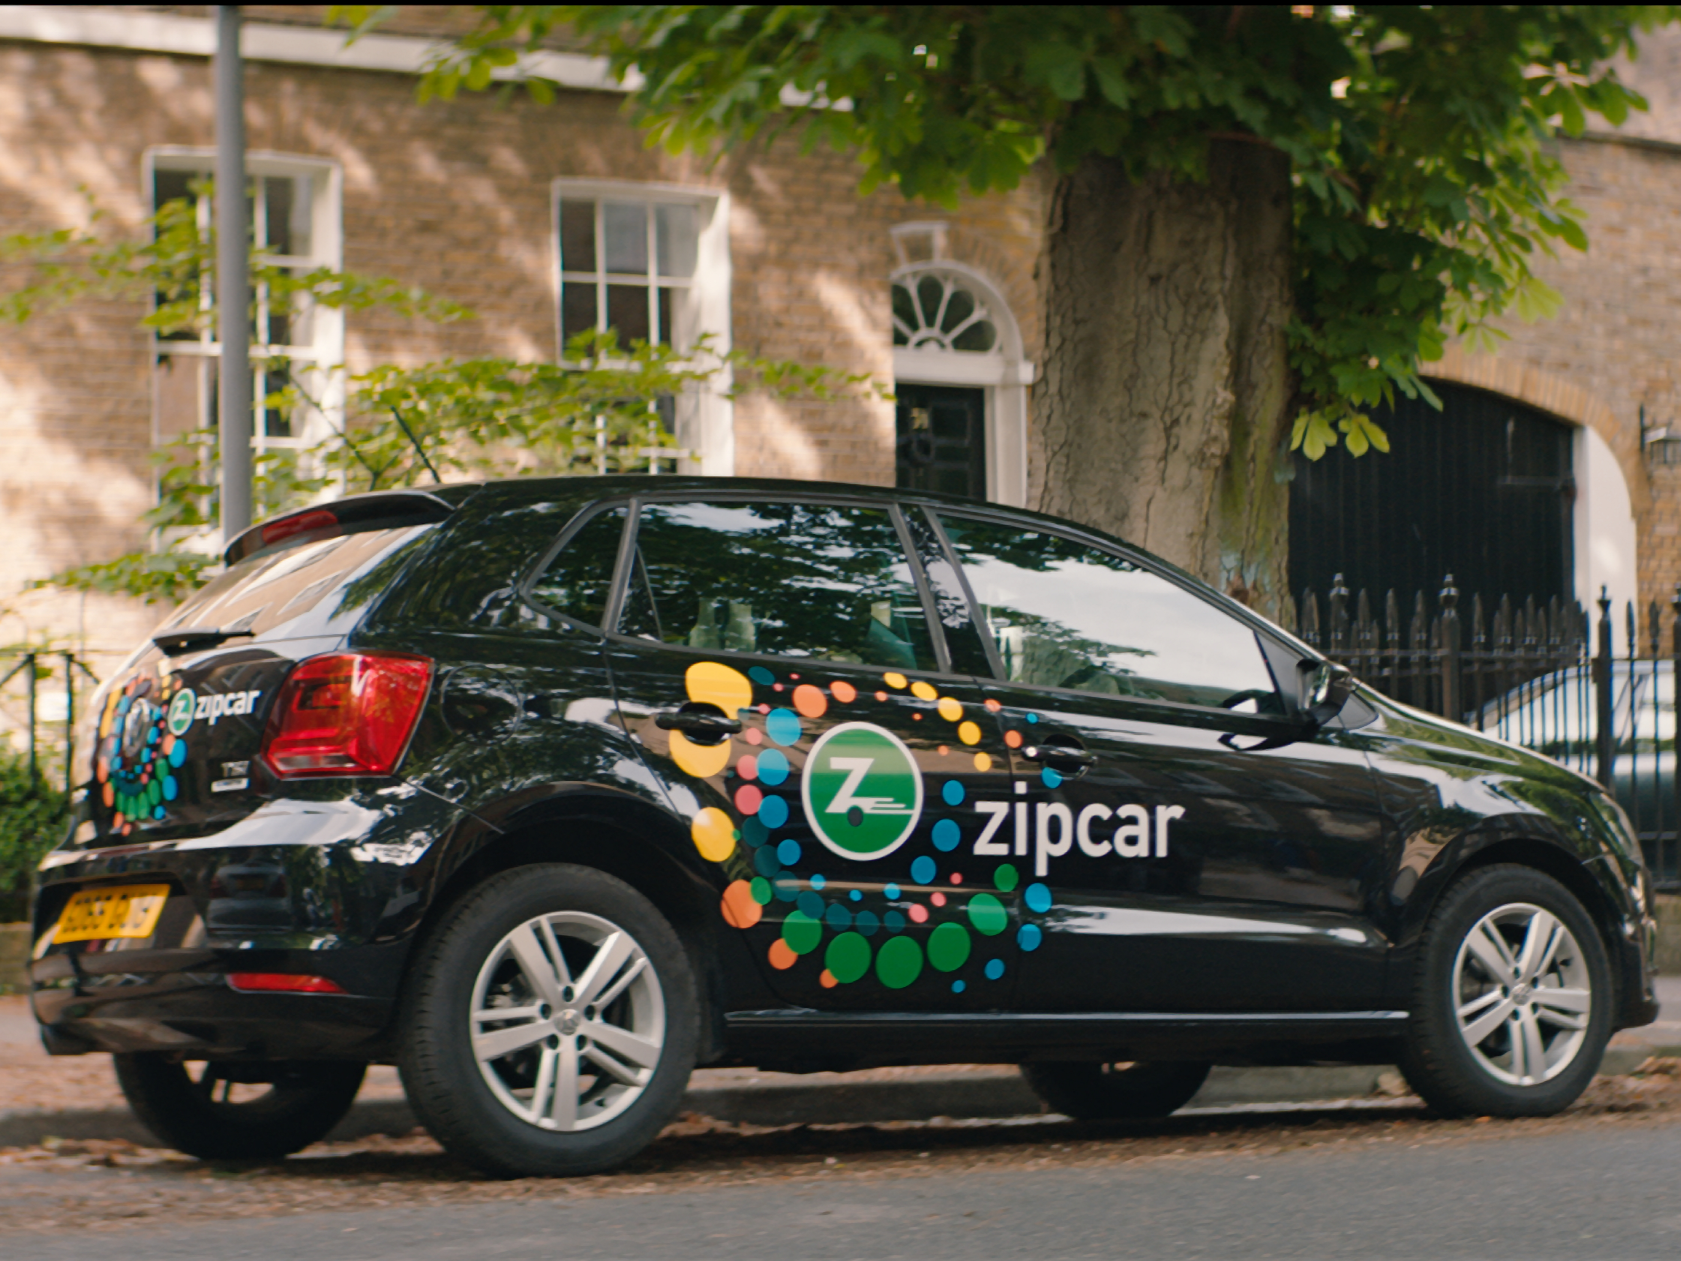 zipcar Tufts university has partnered with zipcar to provide transportation options for students, faculty, and staff number of vehicles: 10 medford campus.